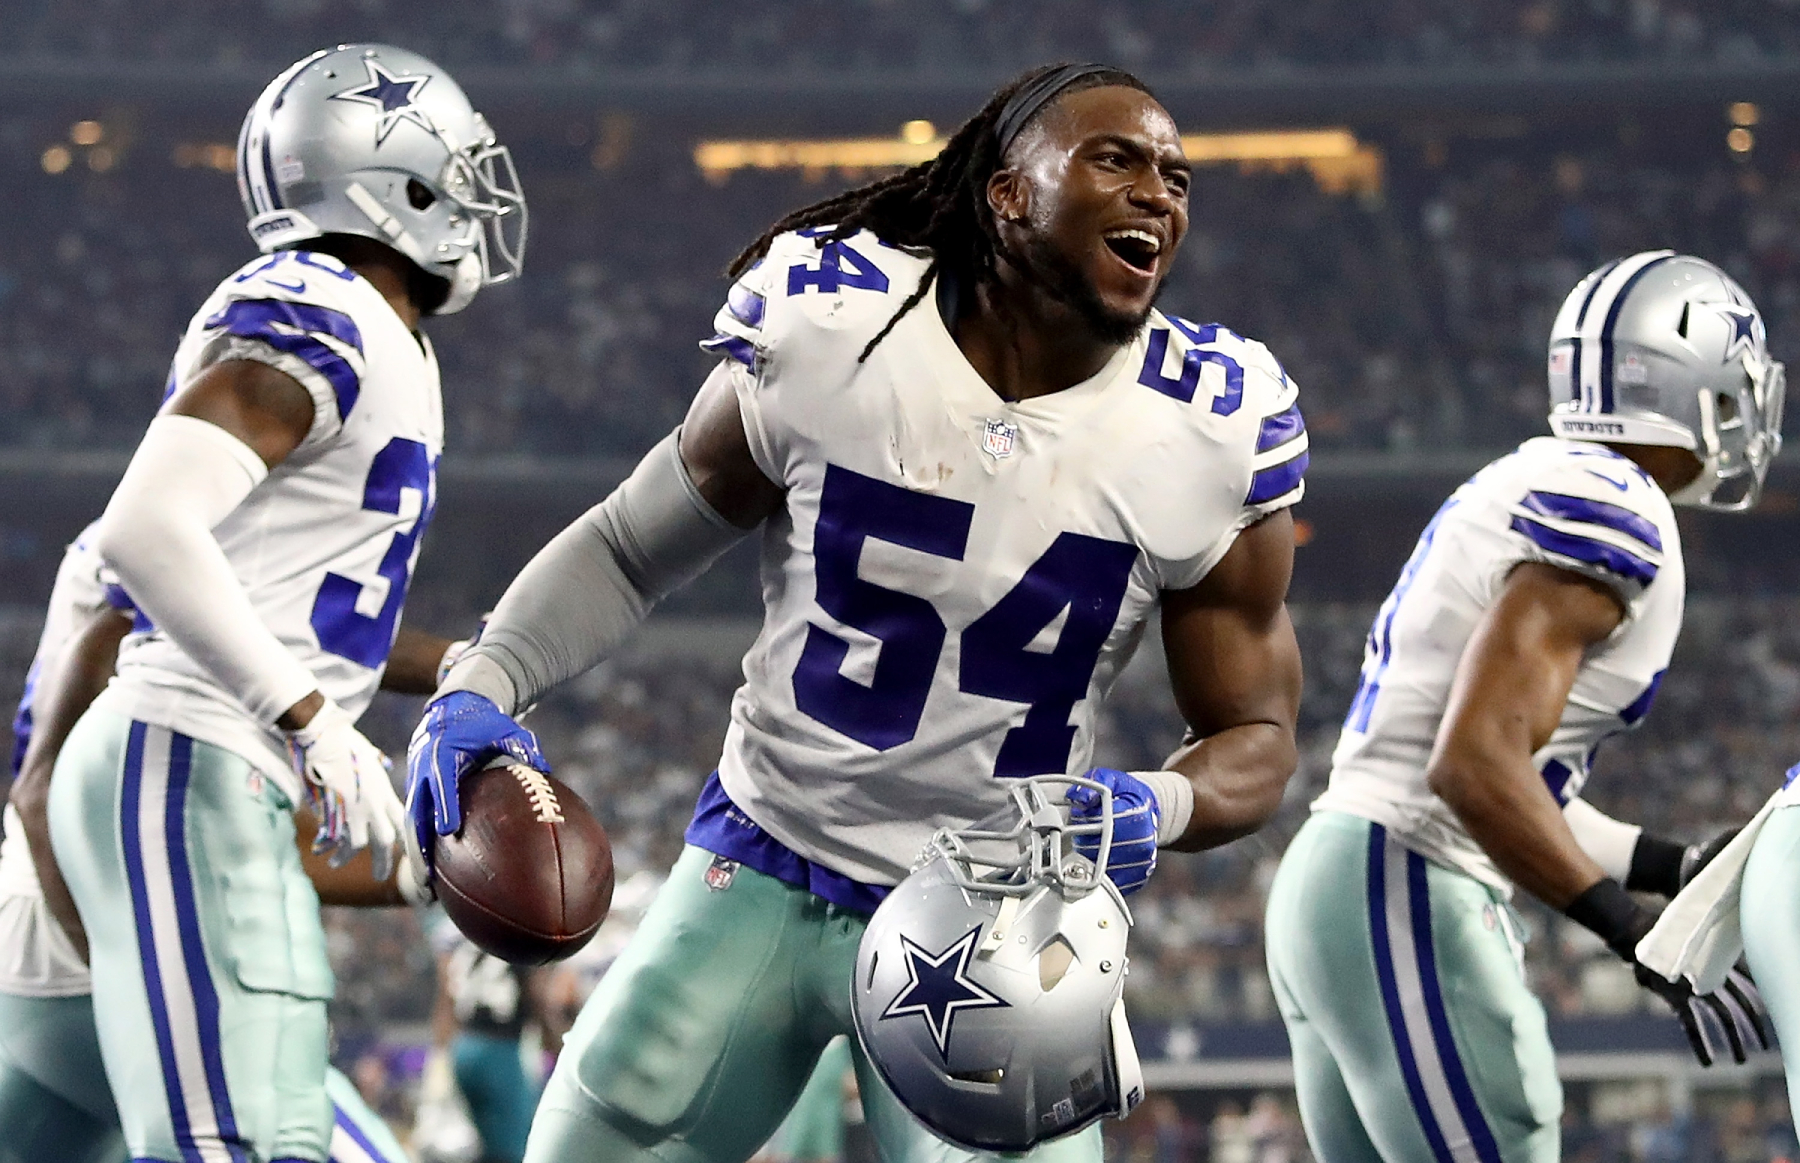 Jaylon Smith has become one of the best linebackers in the NFL for the Dallas Cowboys. However, Smith was just ridiculously disrespected.